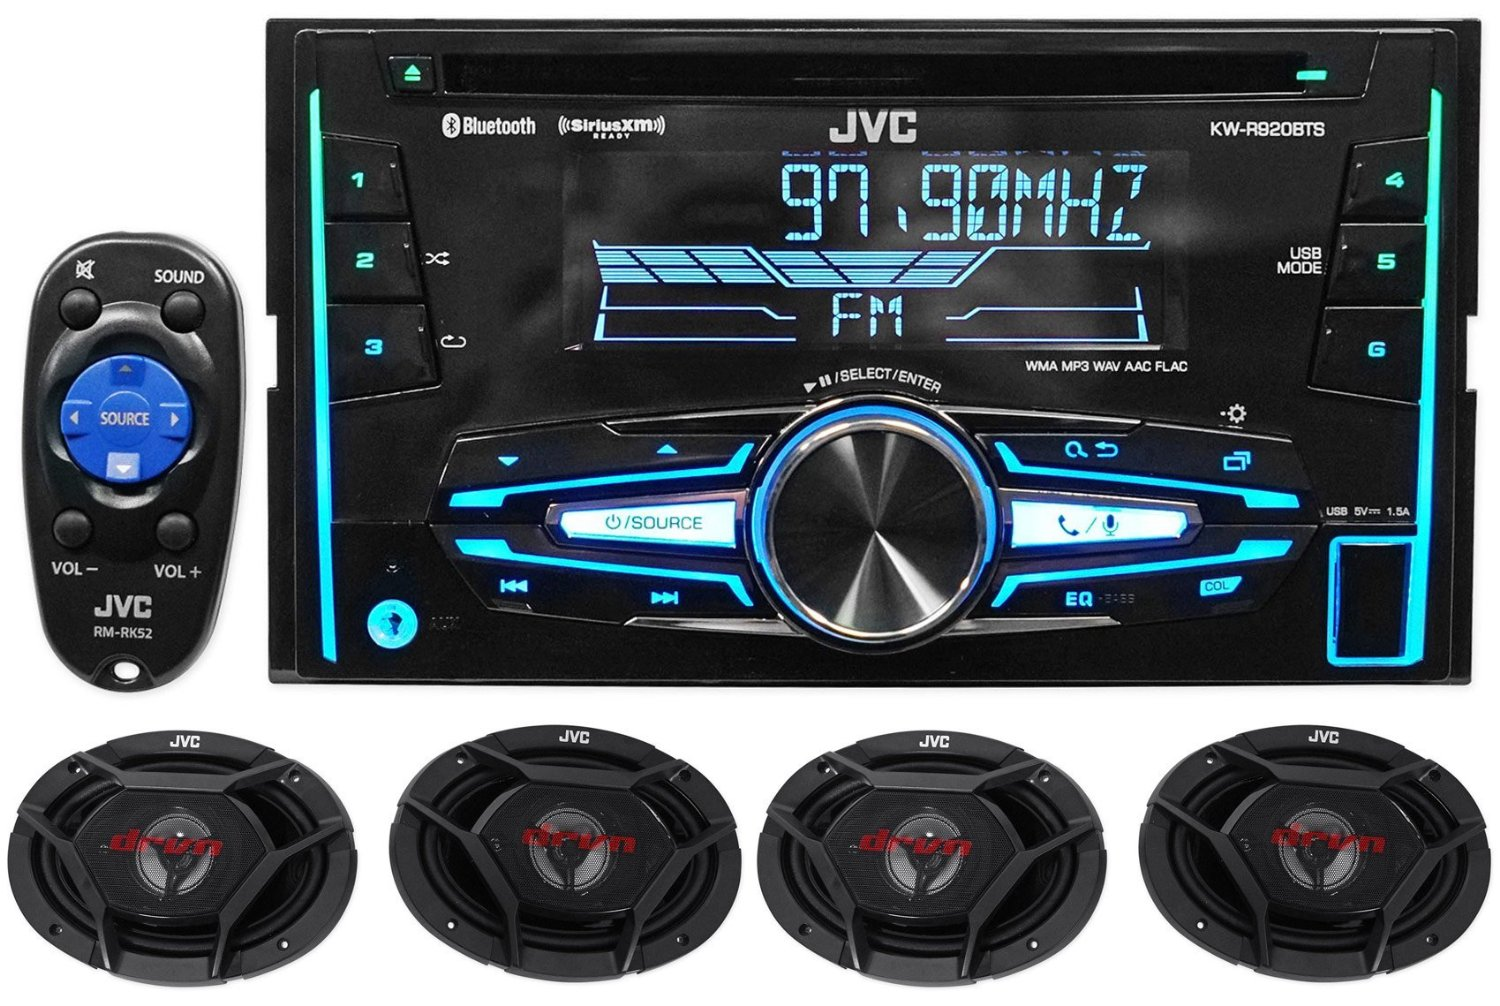 """Package: JVC KW-R920BTS Double-Din In-Dash Stereo/CD Player/Receiver With Bluetooth And USB Capabilities + (2) Pair of JVC CS-DR6930 3-Way Car Speakers Totaling 2000 Watt Measure 6""""X9"""""""